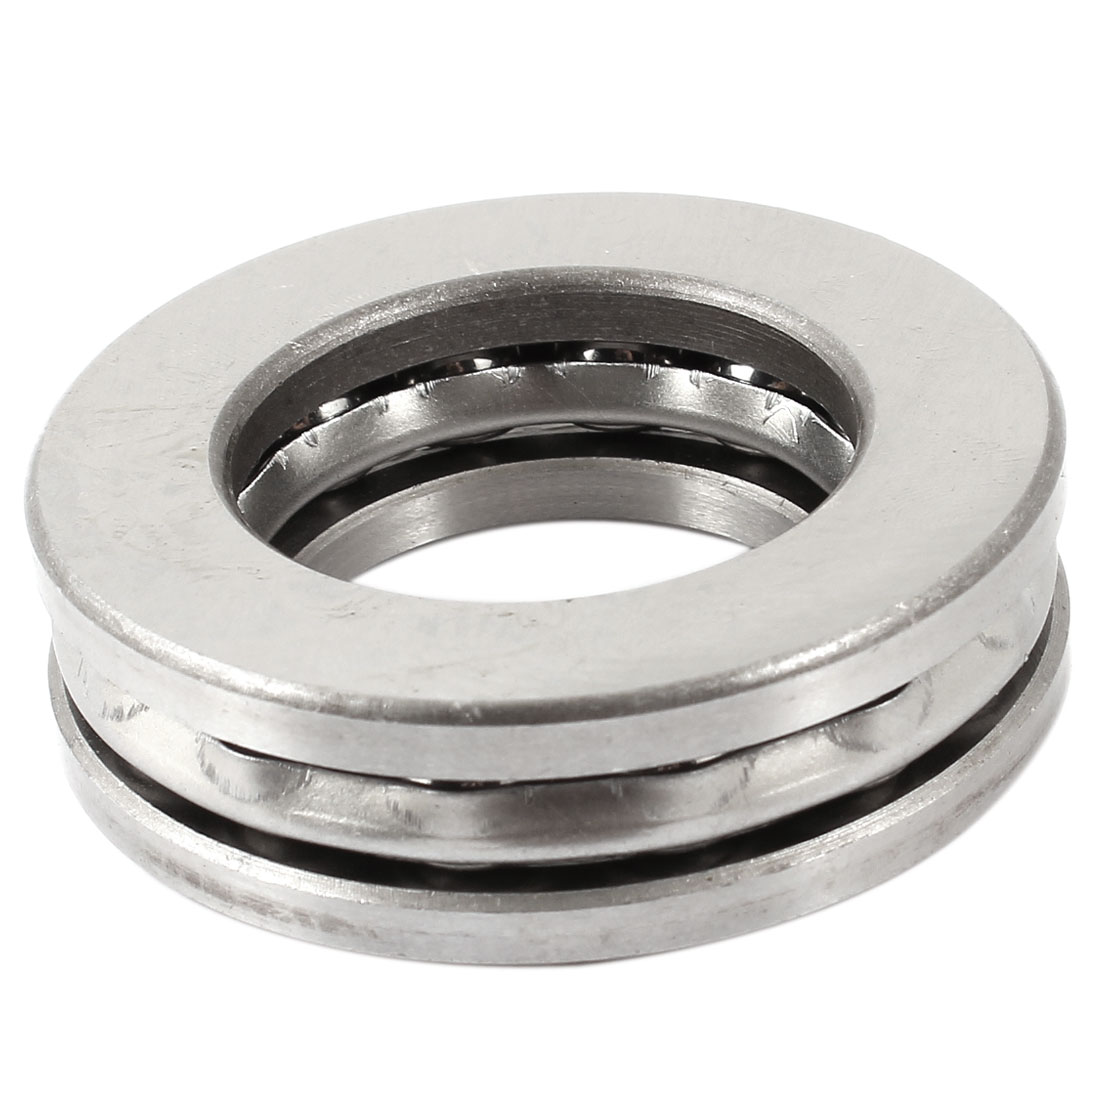 Carbon Steel Ball Thrust Bearing 51207 35mm x 62mm x 18mm